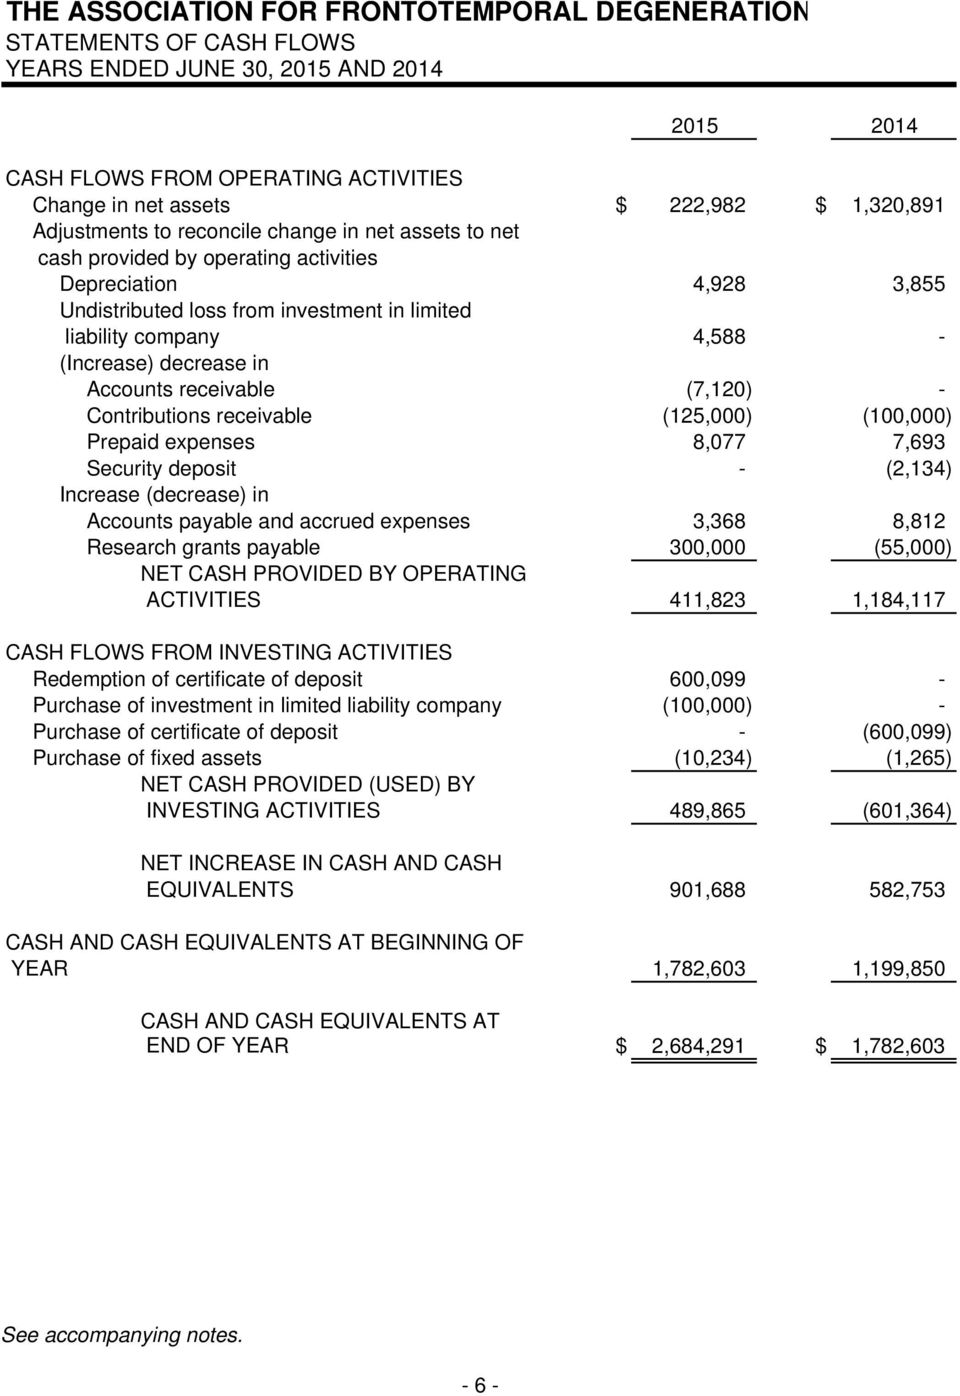 Contributions receivable (125,000) (100,000) Prepaid expenses 8,077 7,693 Security deposit - (2,134) Increase (decrease) in Accounts payable and accrued expenses 3,368 8,812 Research grants payable